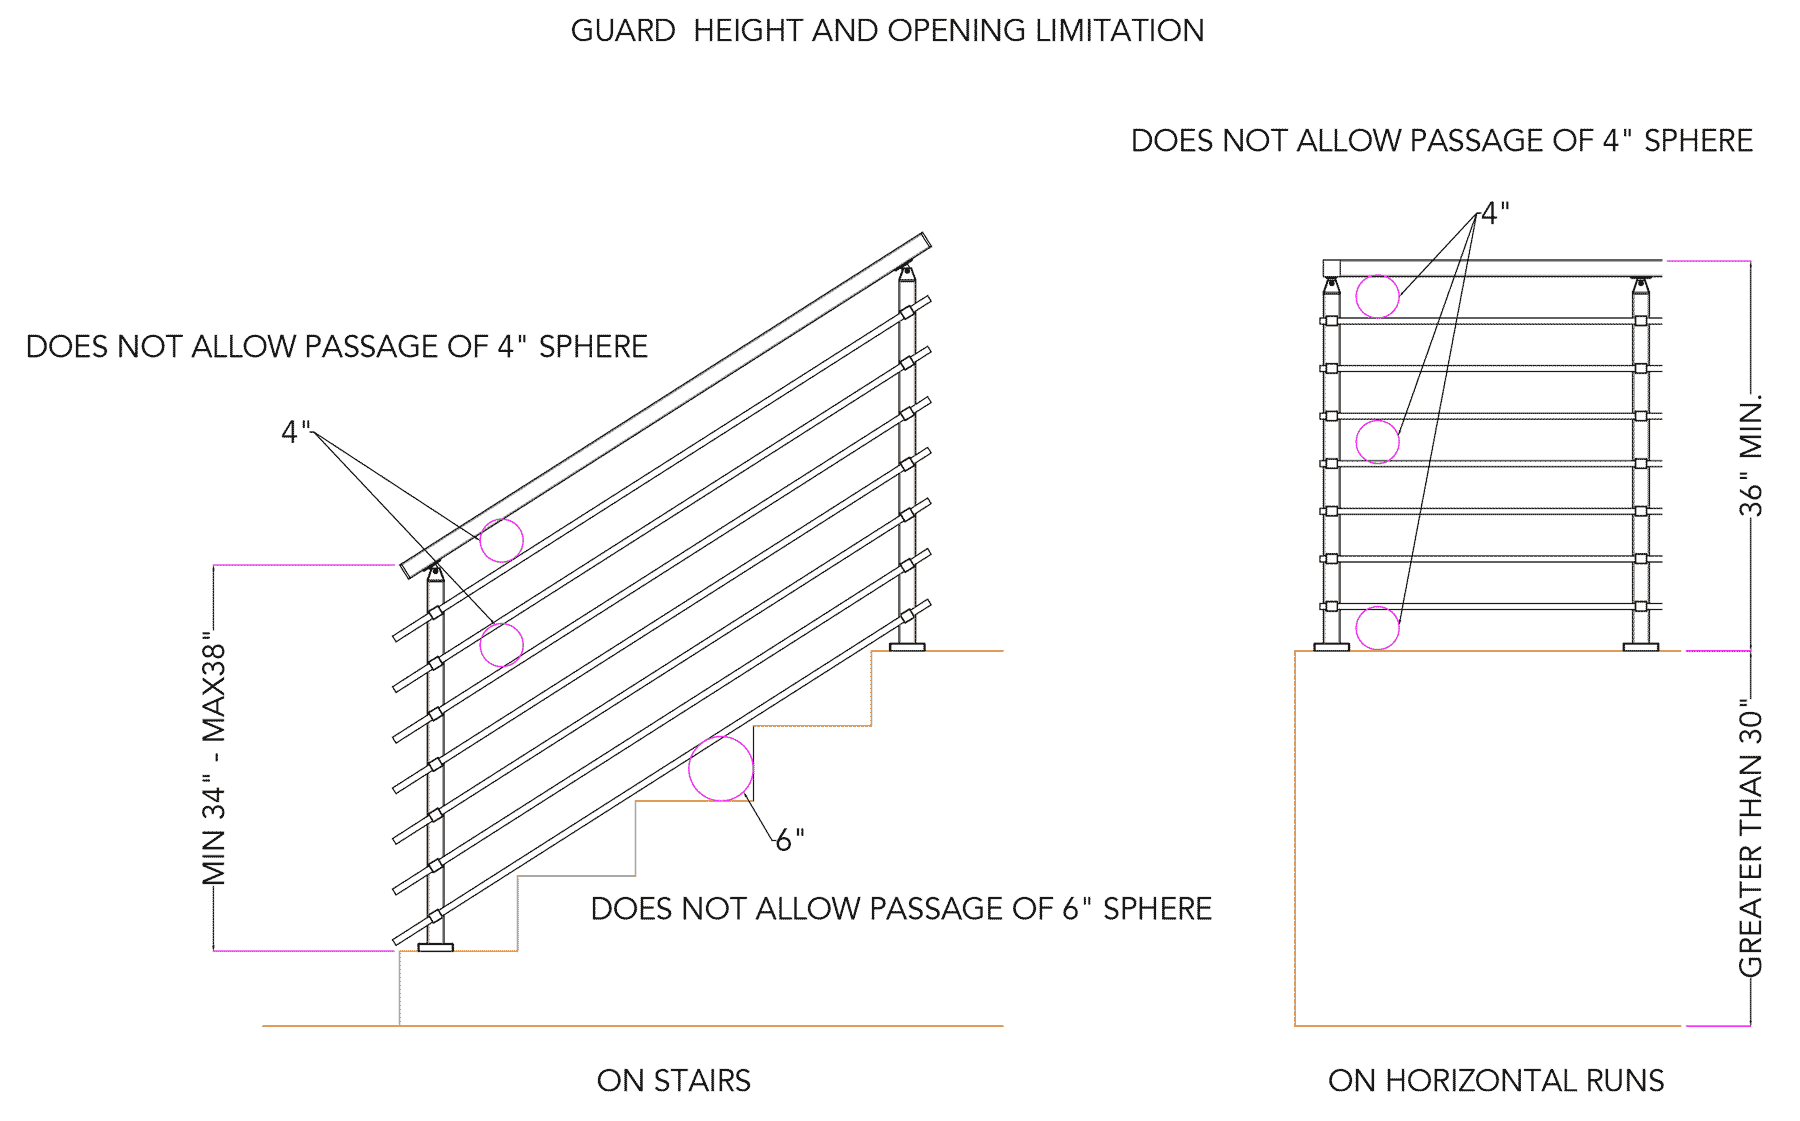 guardrail height and opening limitation